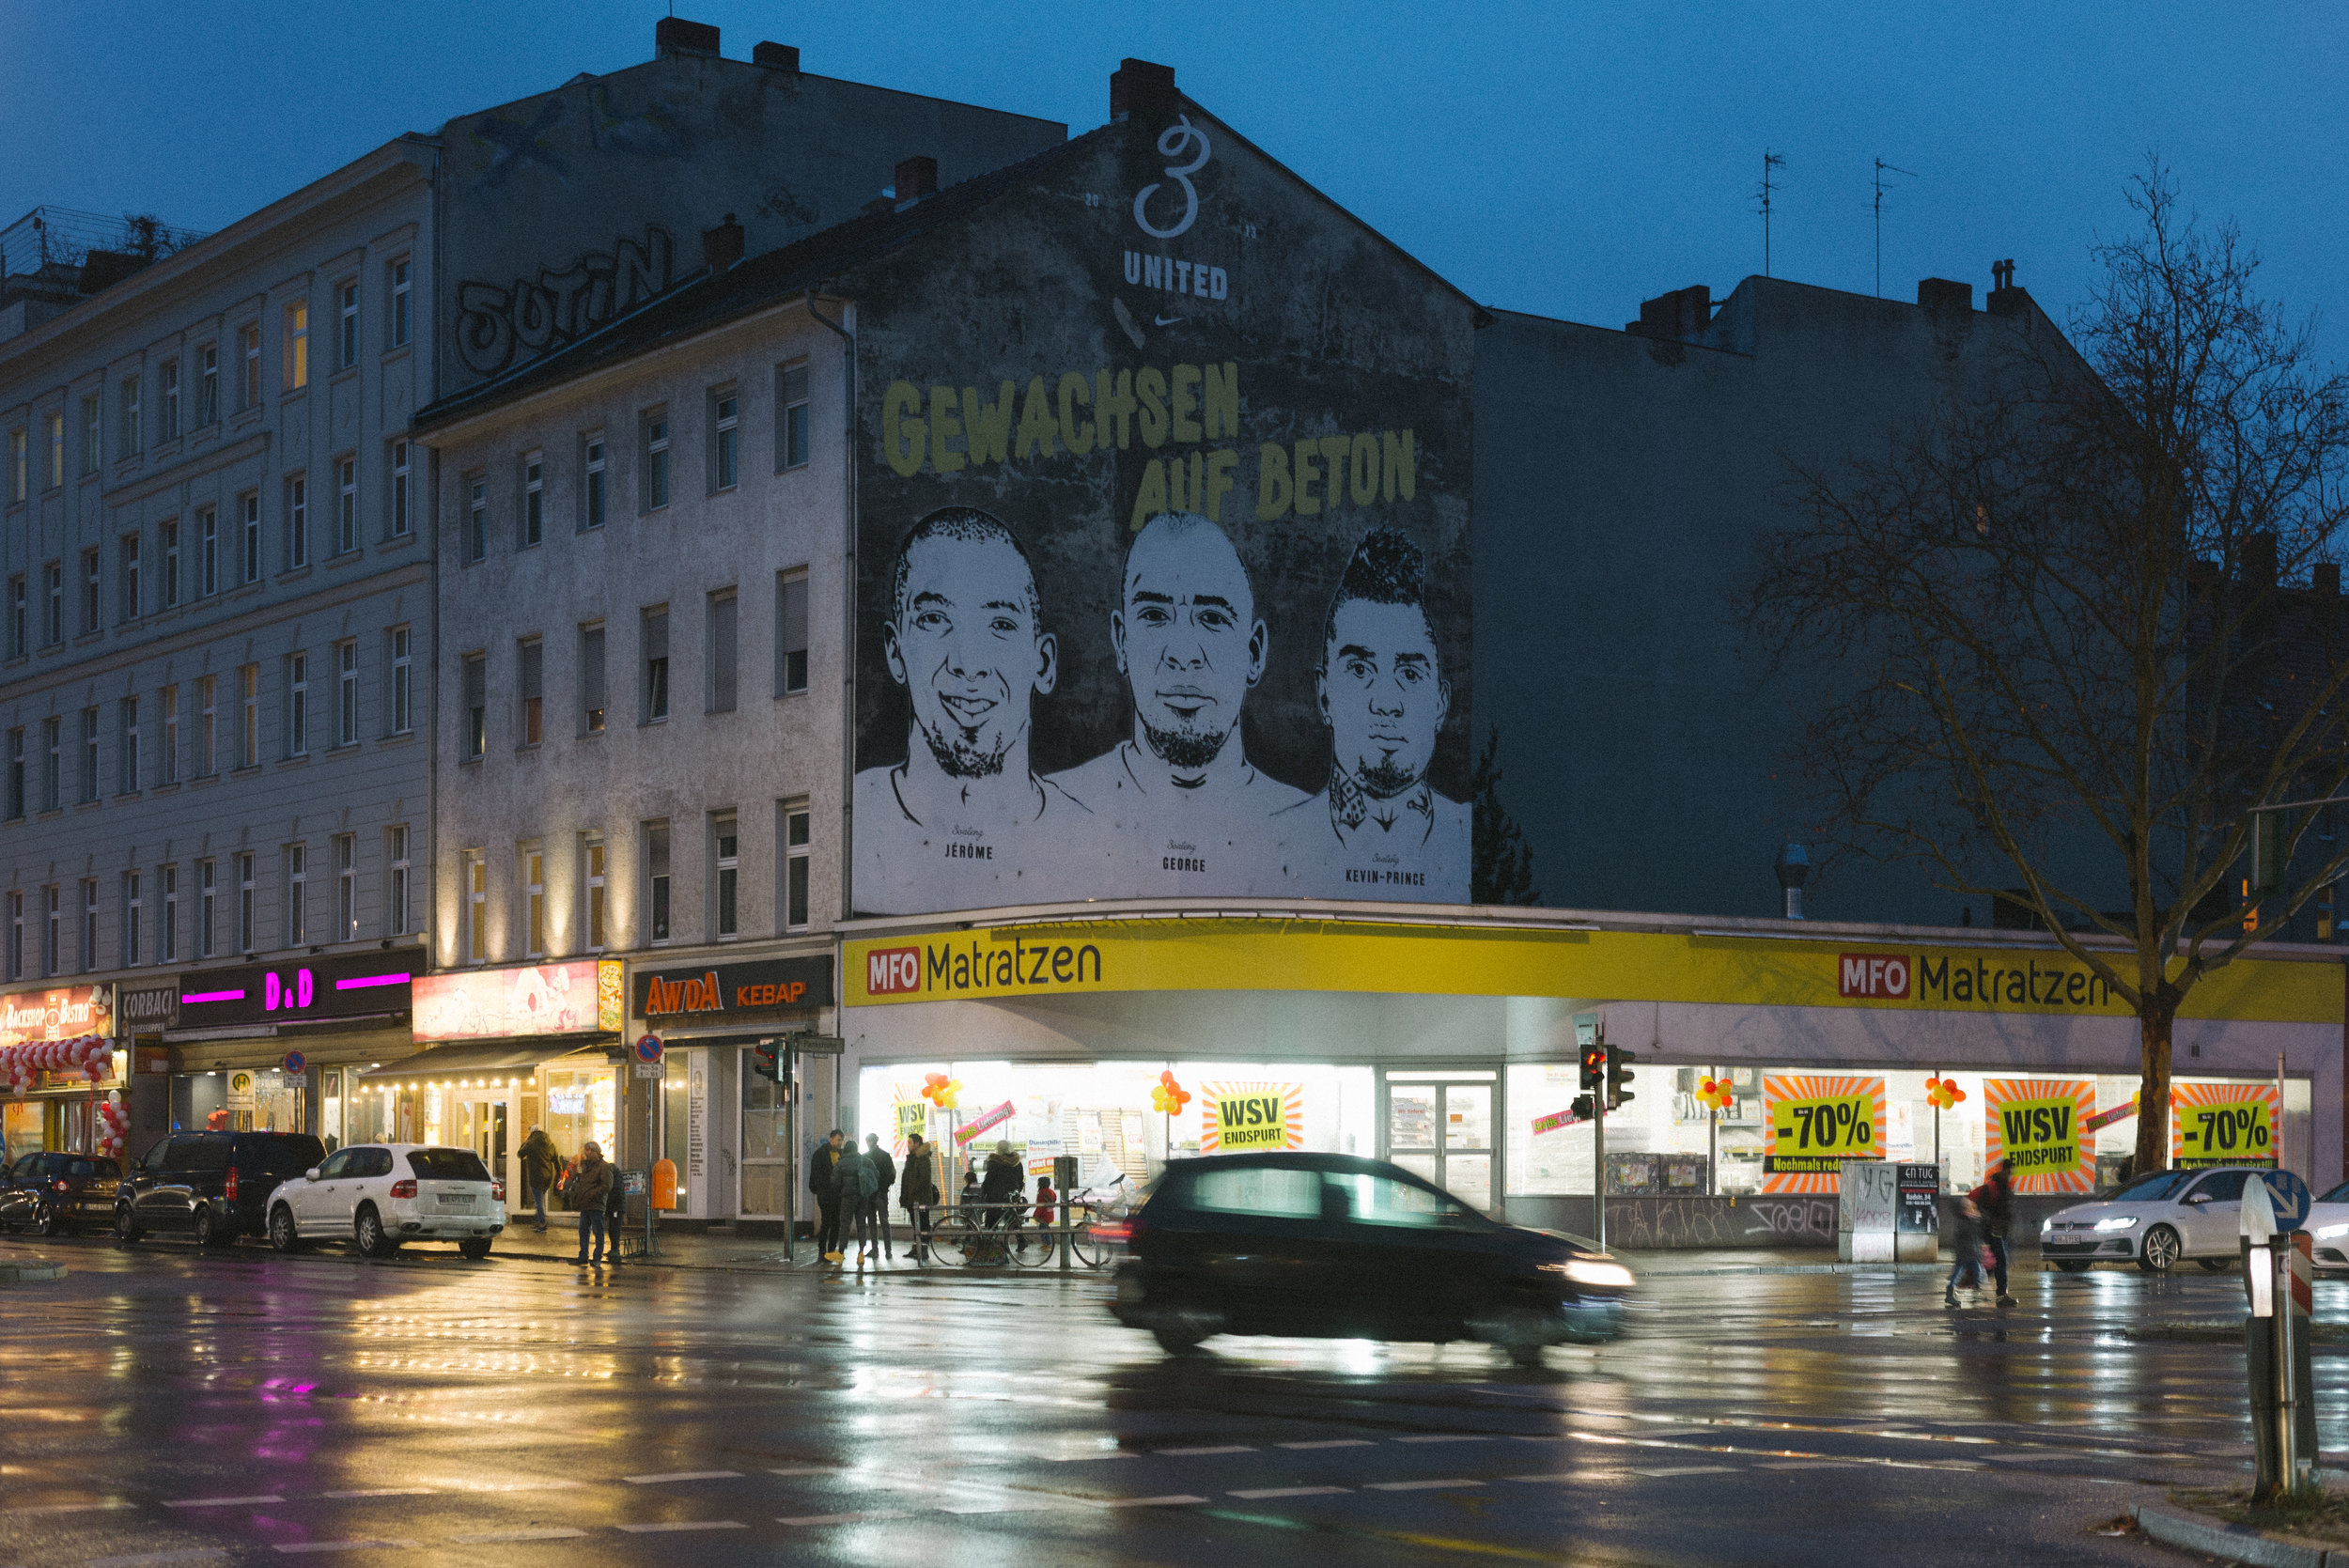 the infamous pankstraße with the mural of wedding-born and raised boateng brothers.